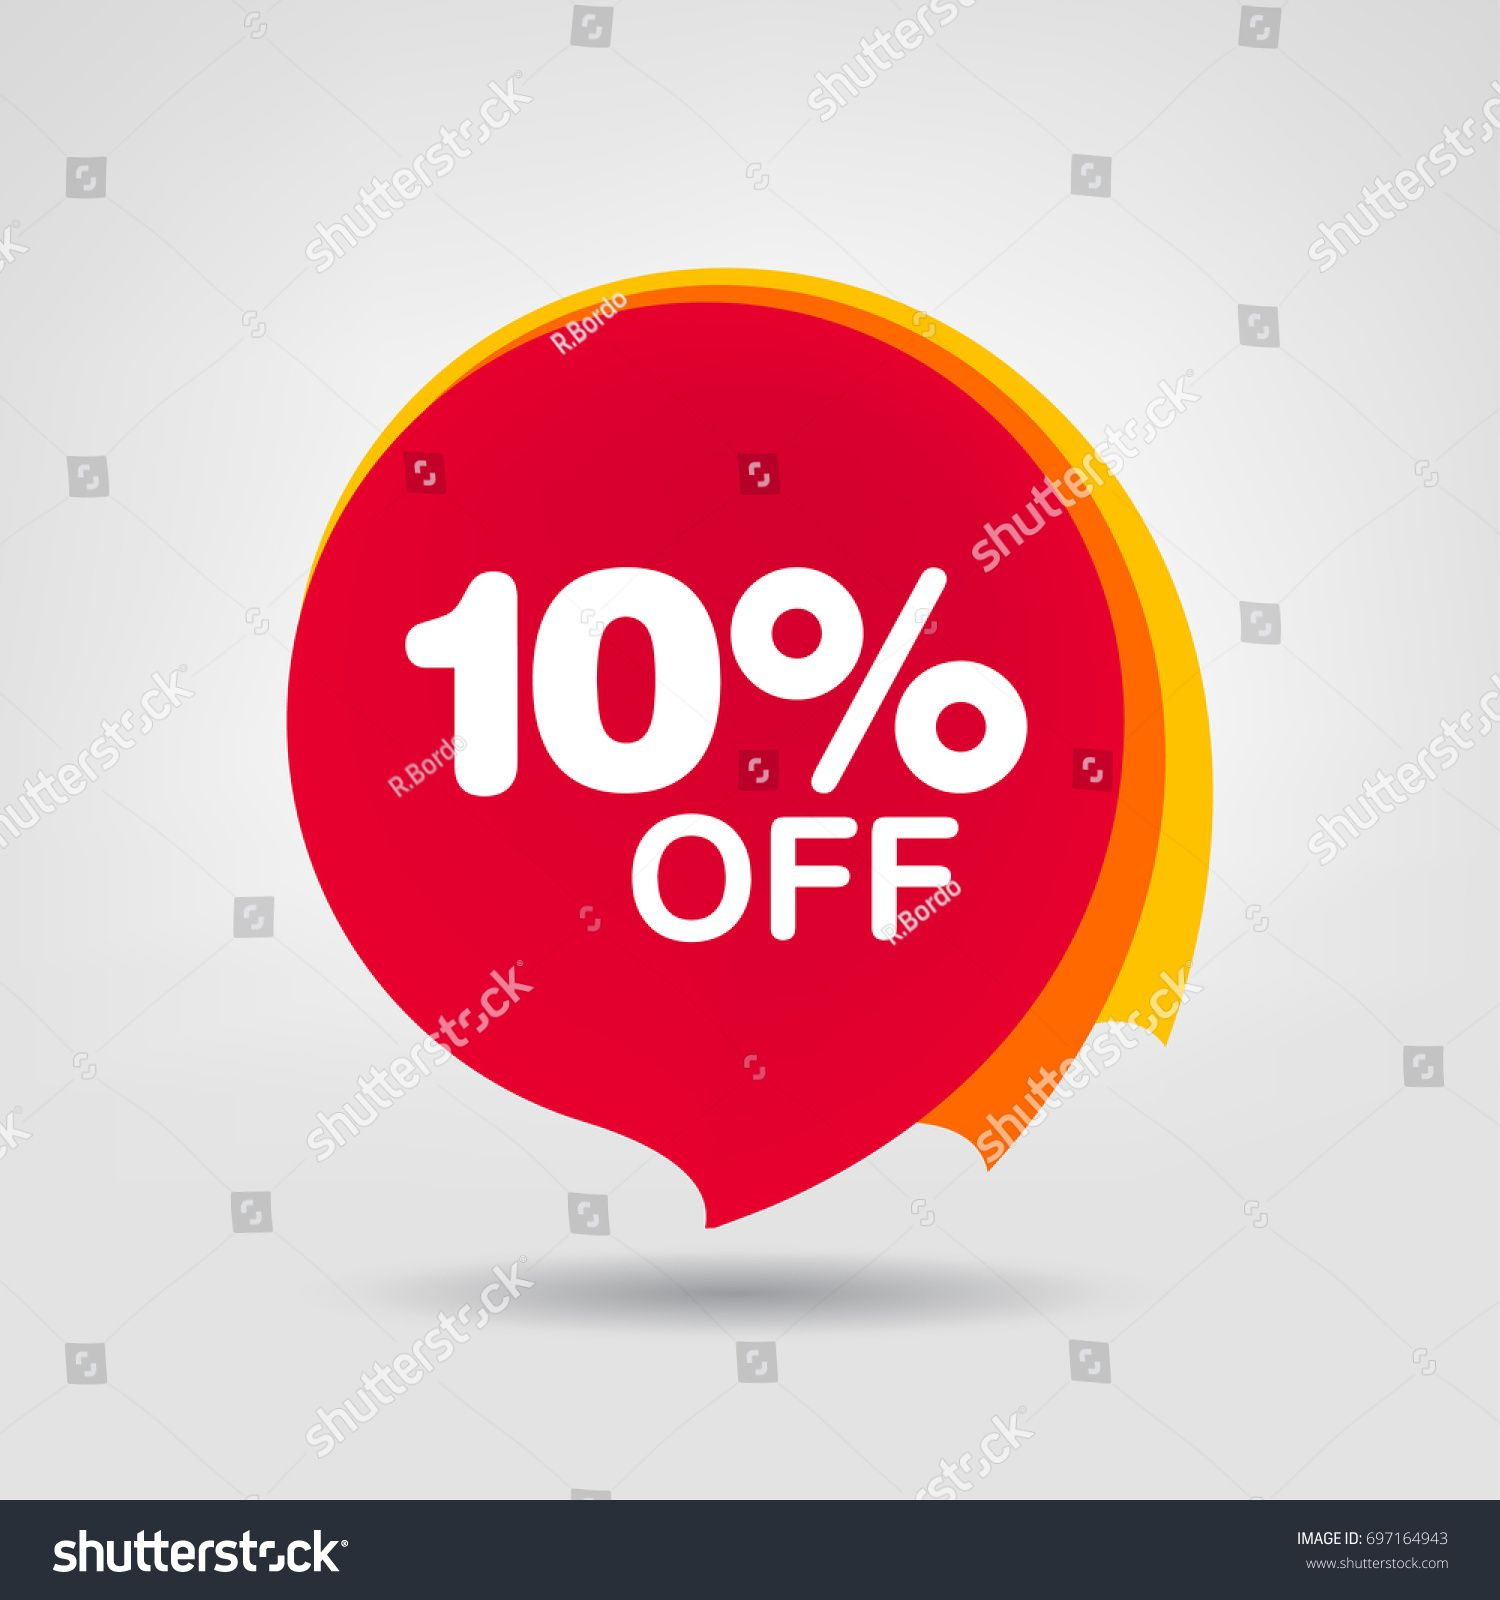 10 Off Sale Discount Banner Discount Offer Price Tag Special